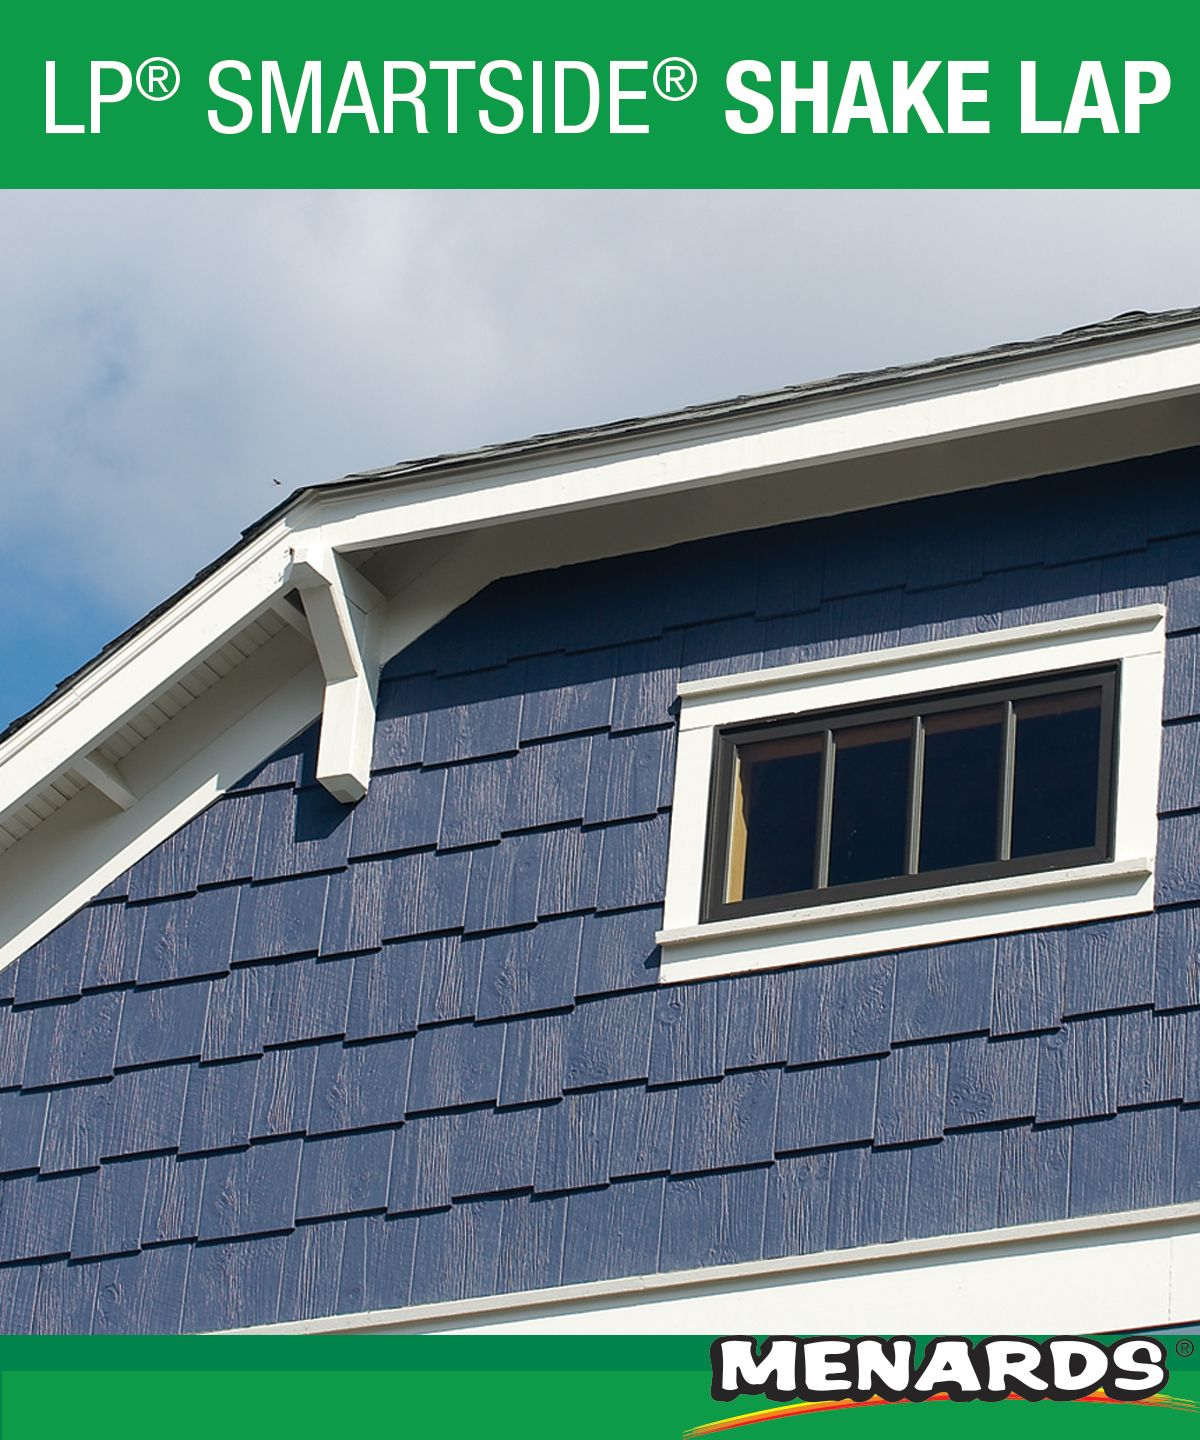 Lp Smartside 7 16 X 12 X 48 Reversible Cedar Texture Fiber Shake Siding Offers The Beautiful Look Of Real C Engineered Wood Siding Wood Siding Curb Appeal